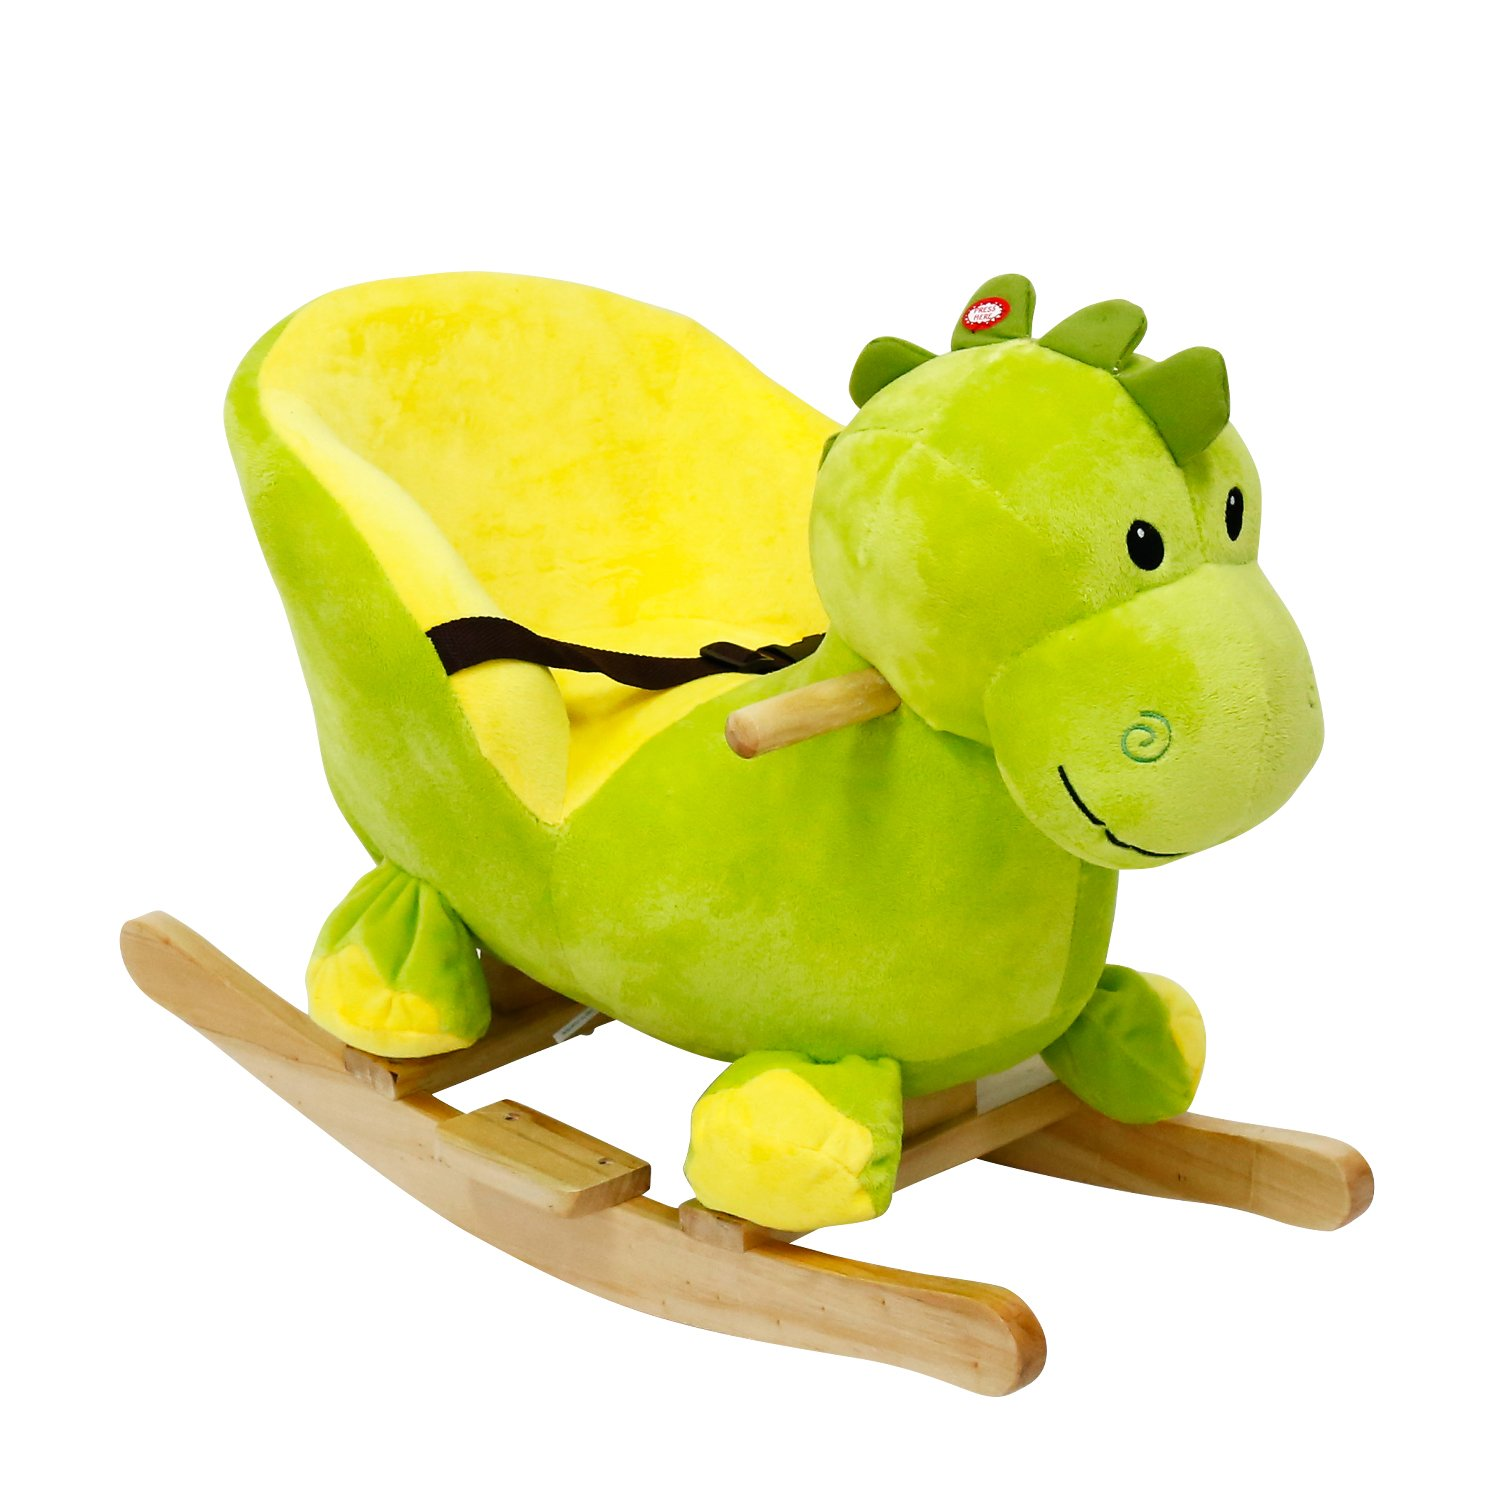 Kinbor Baby Kids Toy Plush Rocking Horse Little Dinosaur Theme Style Riding Rocker with Sound, Seat Belts